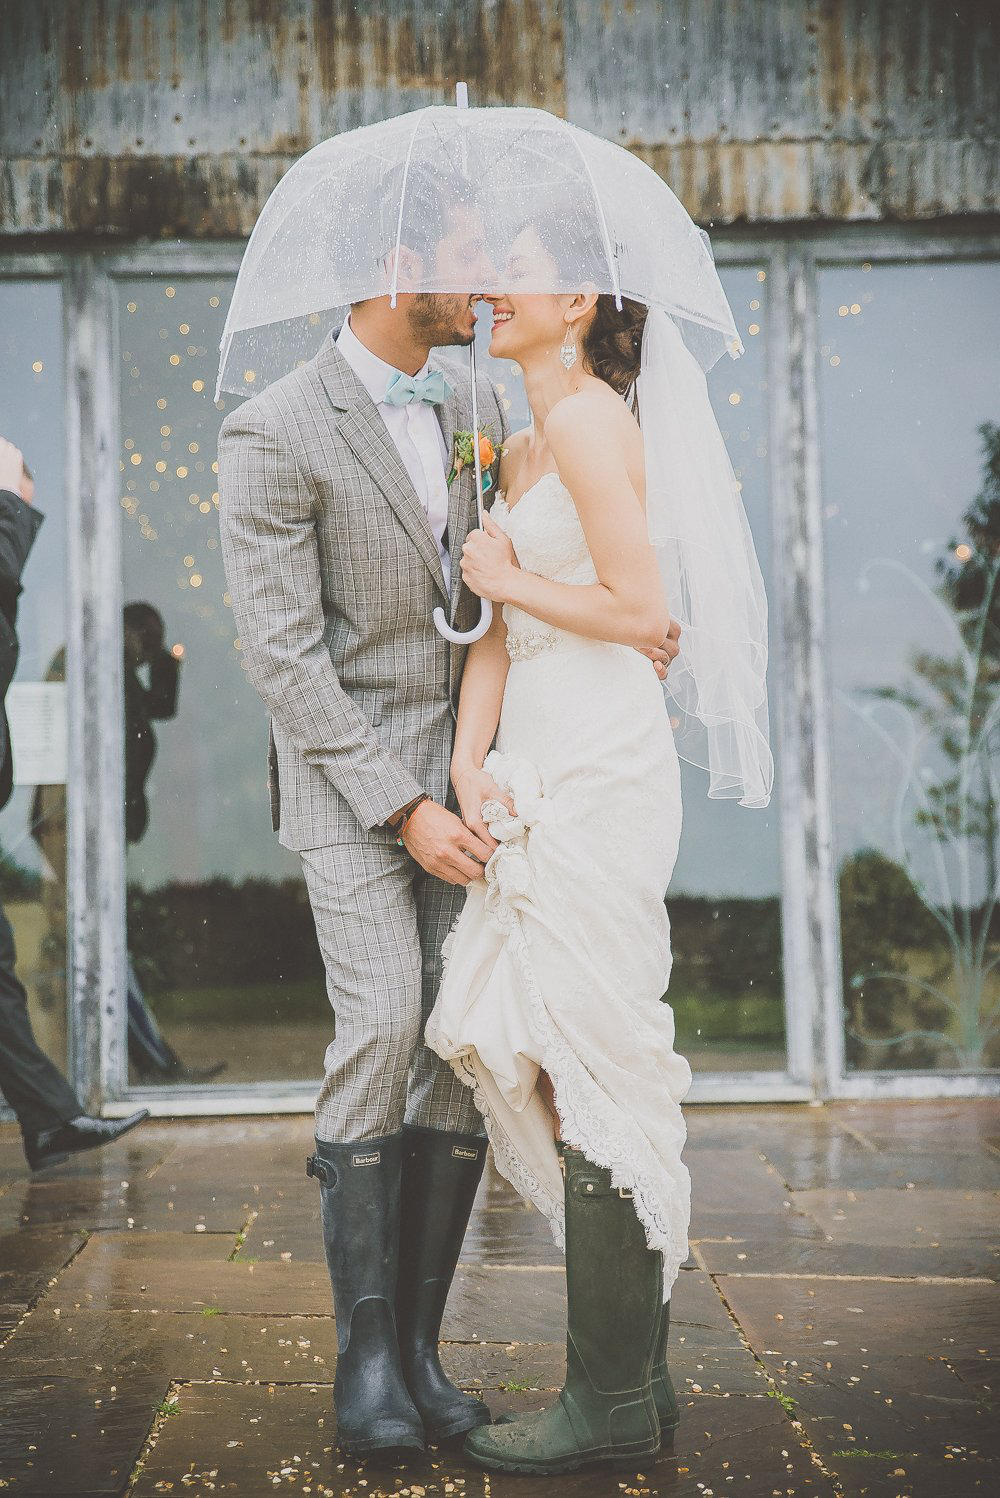 Autumn Wedding in the rain